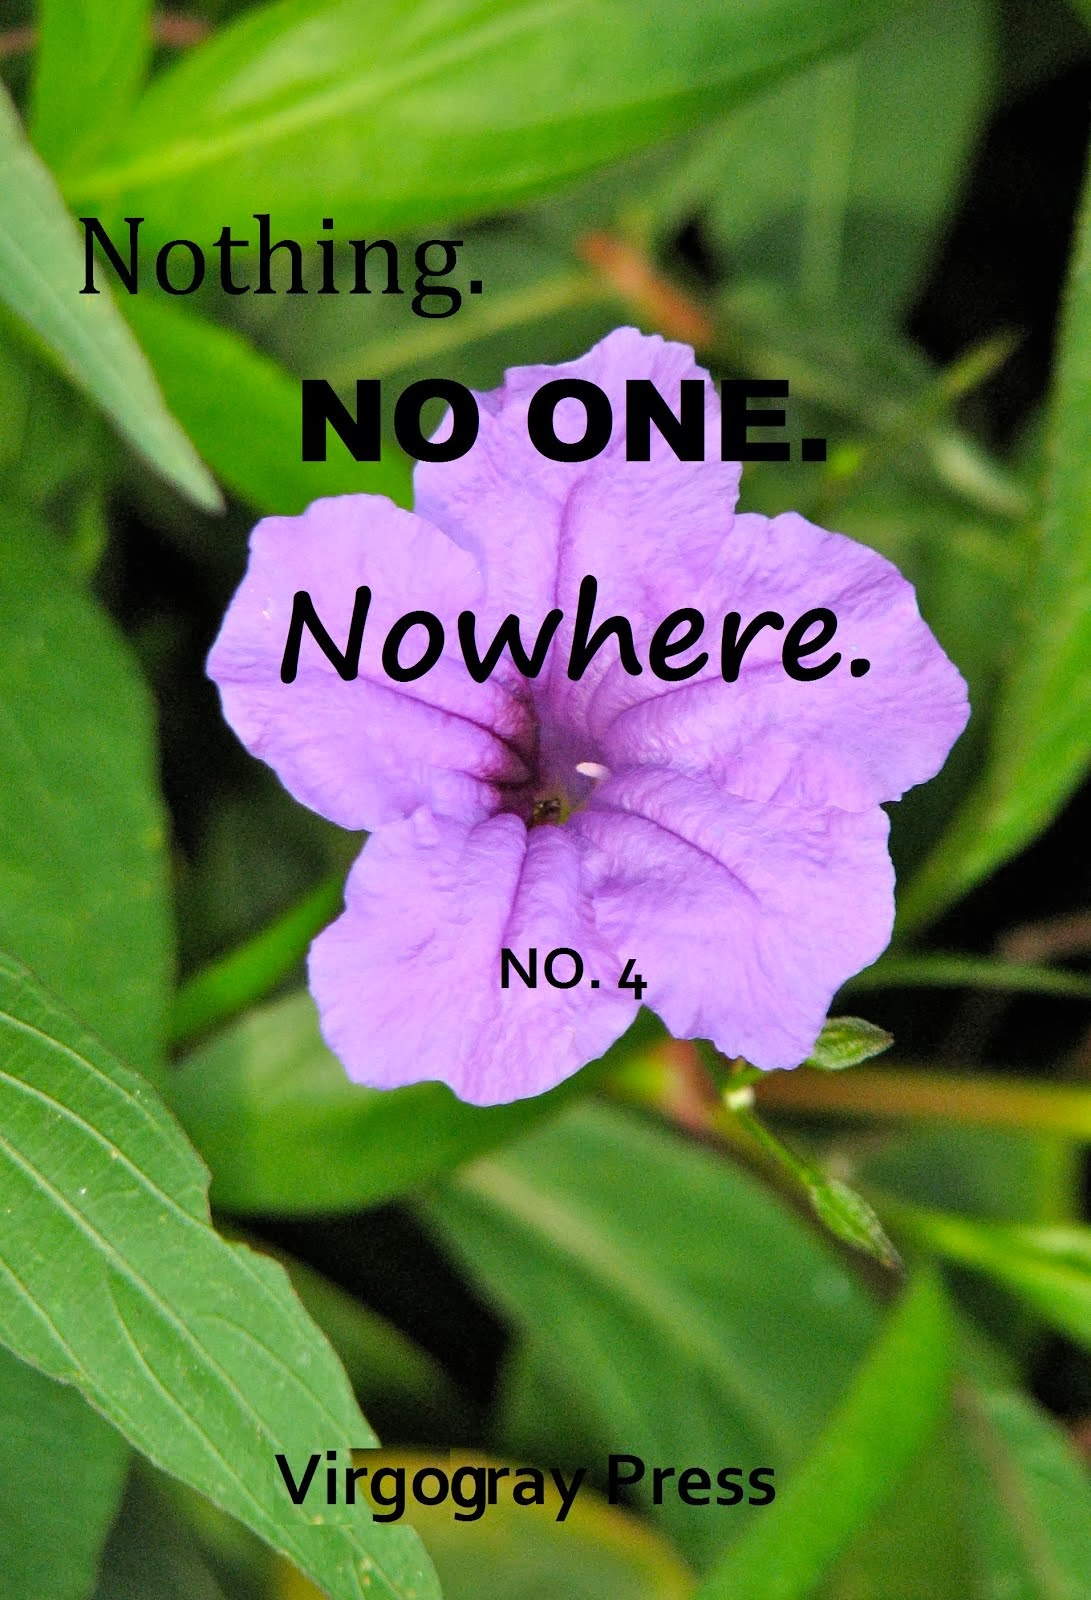 Nothing. No One. Nowhere. #4